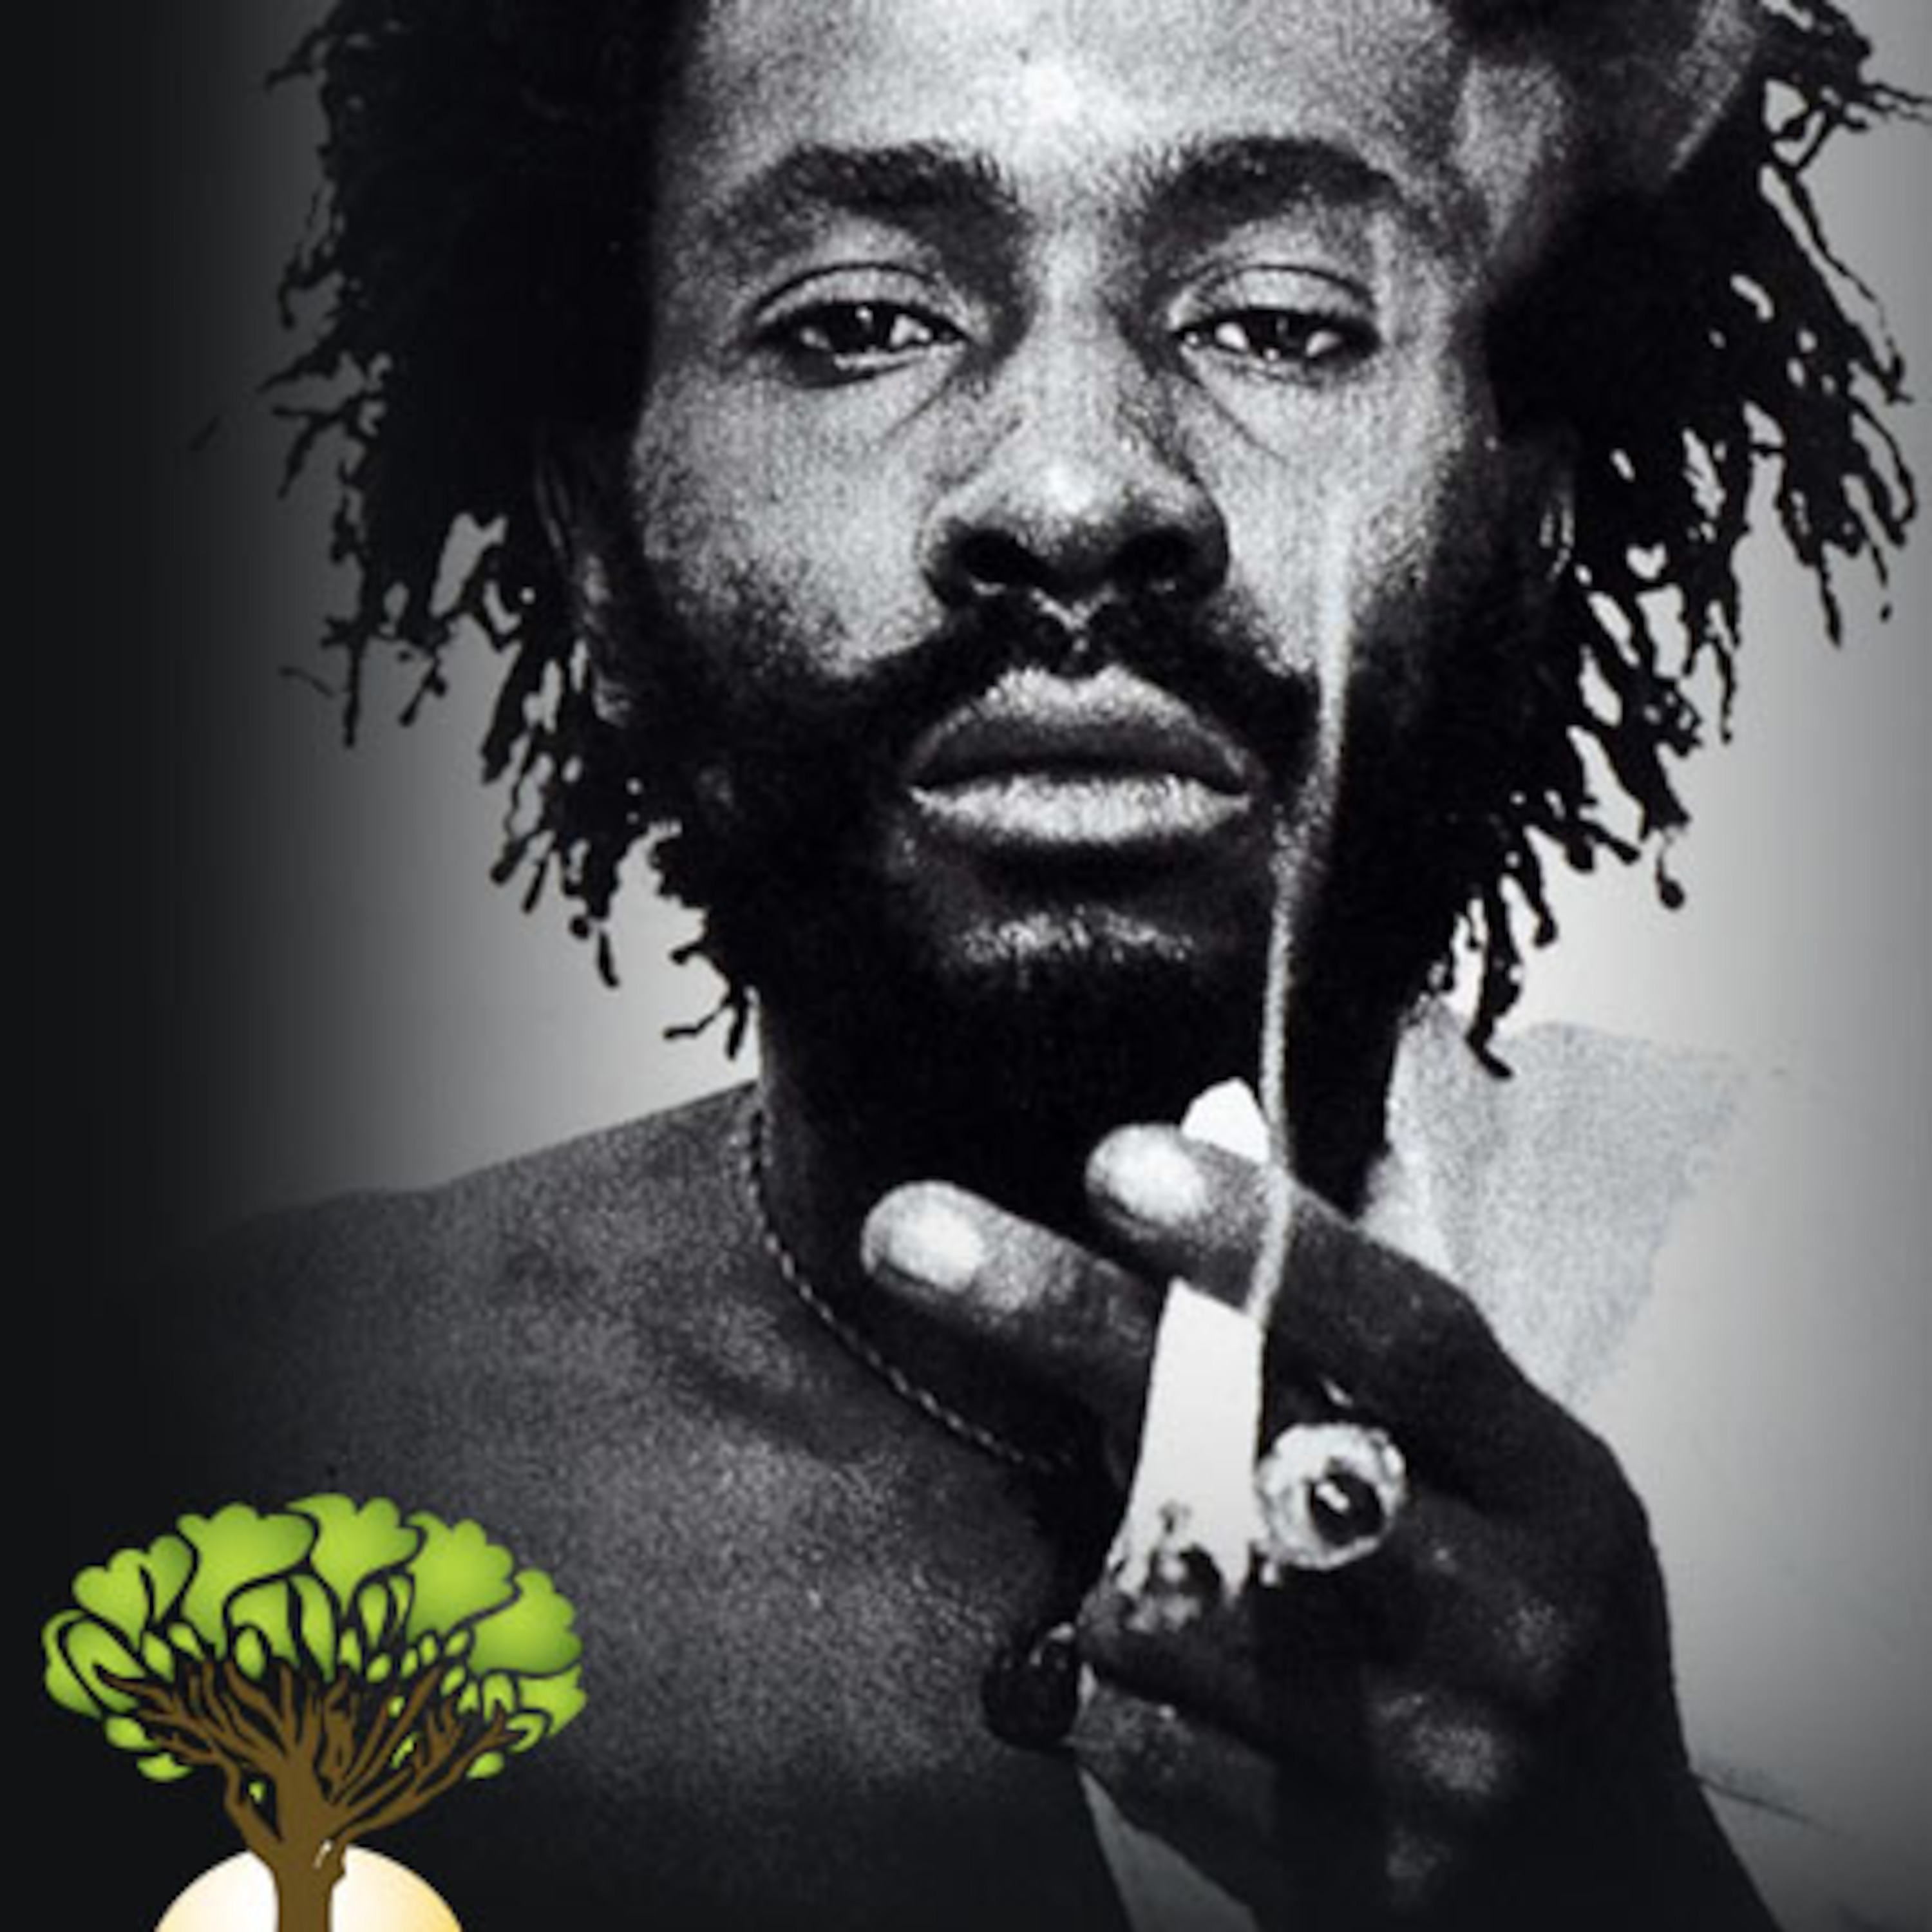 Burning Spear Mix Roots Redemption's podcast